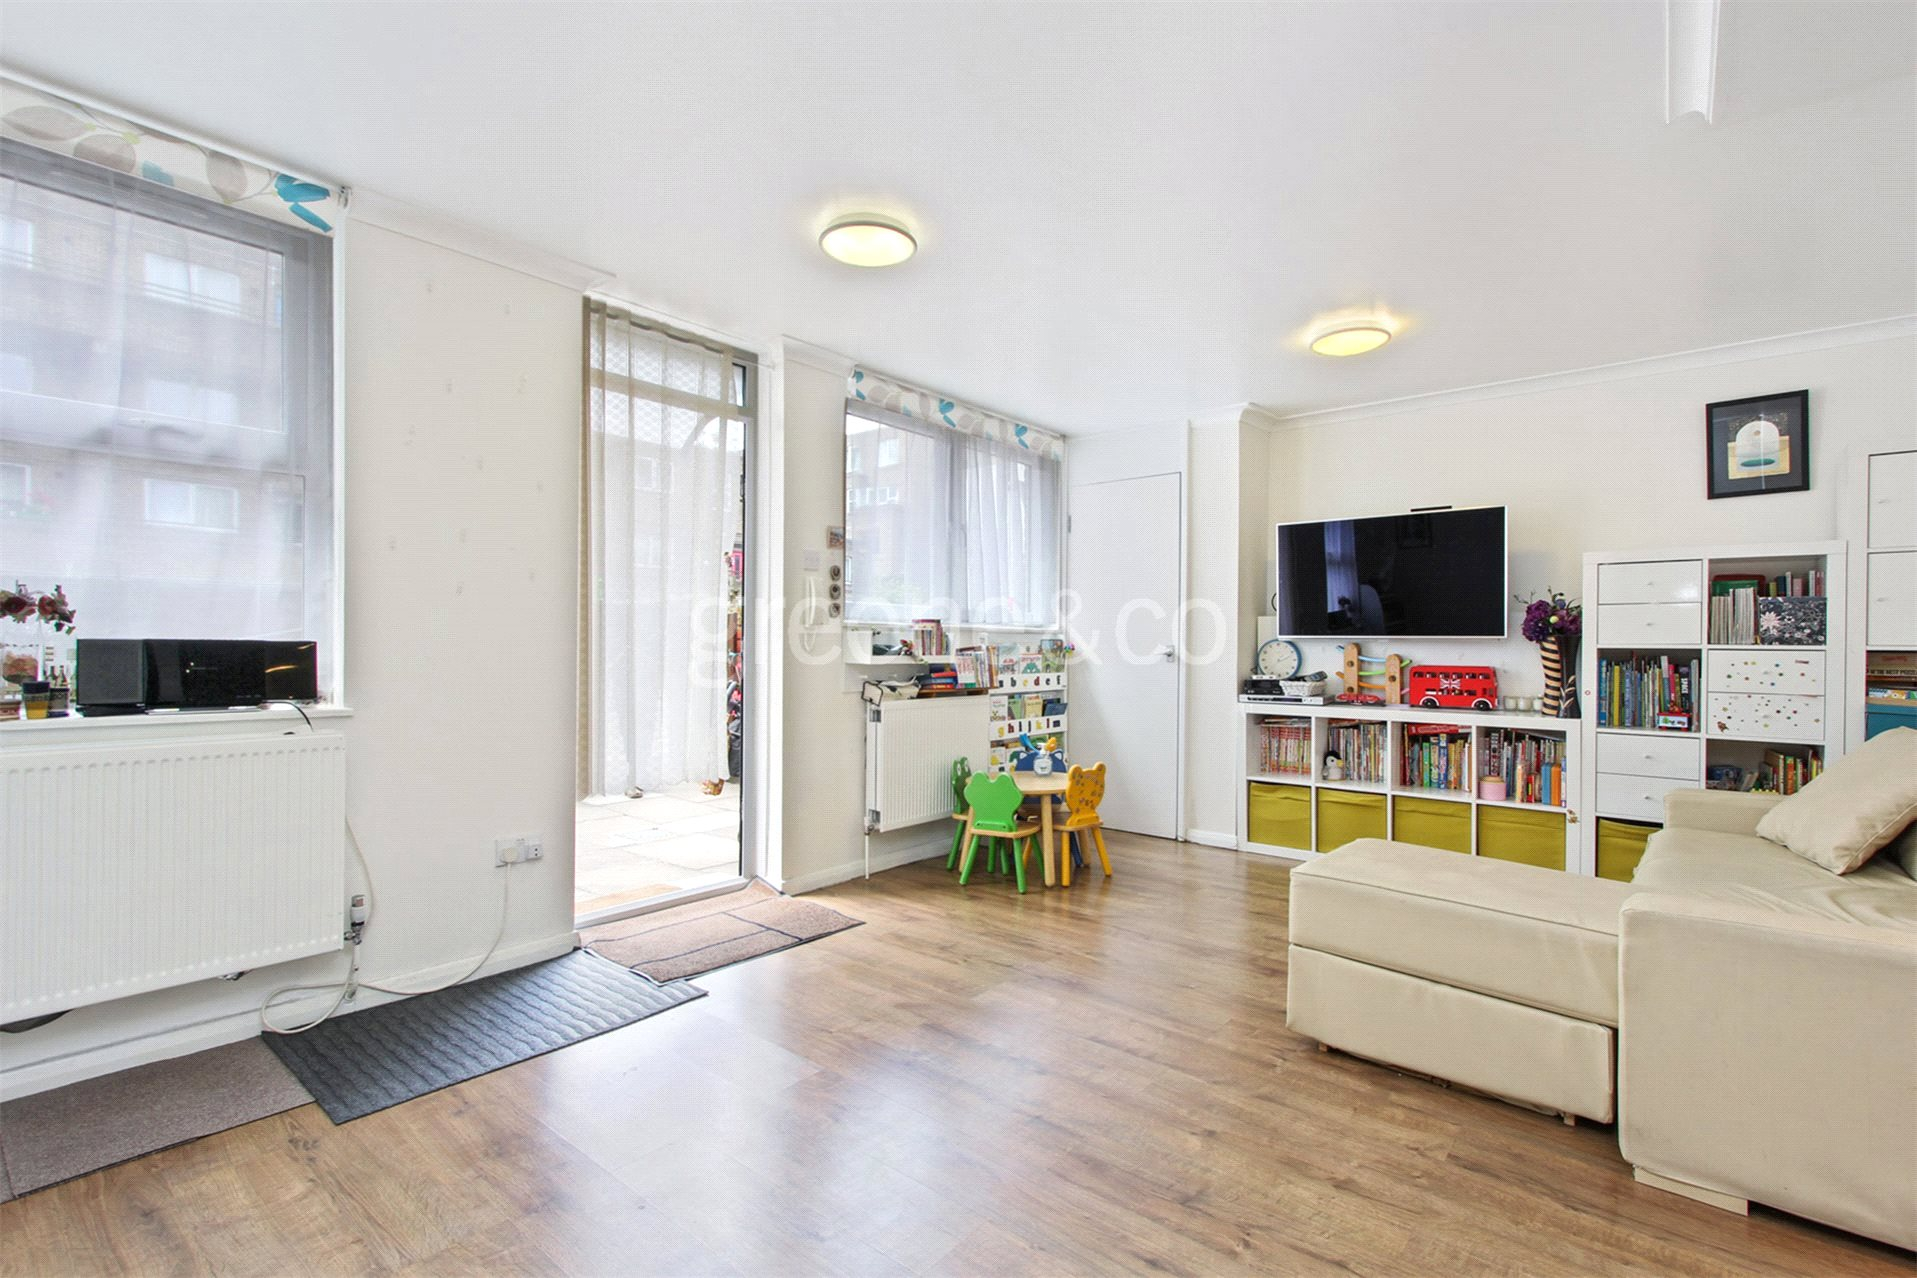 2 Bedrooms Flat for rent in Shire House, Lamb's Passage, London, EC1Y